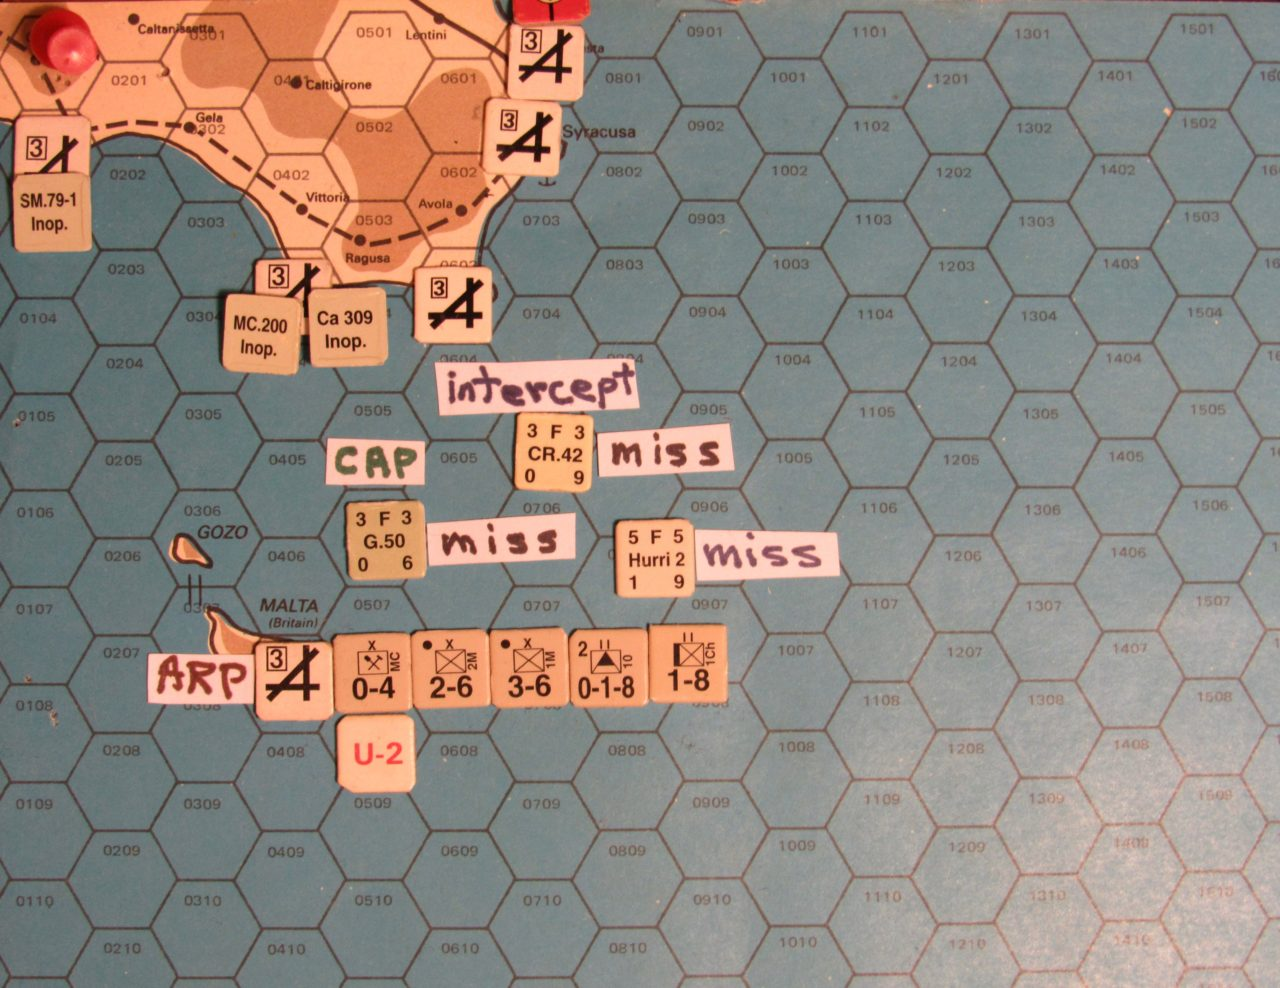 WW ME/ER-II/Crete Scenario May I 41 Allied early Movement Phase air activity around Malta and Sicily: the air transfer arrival of the Hurri 2 air unit